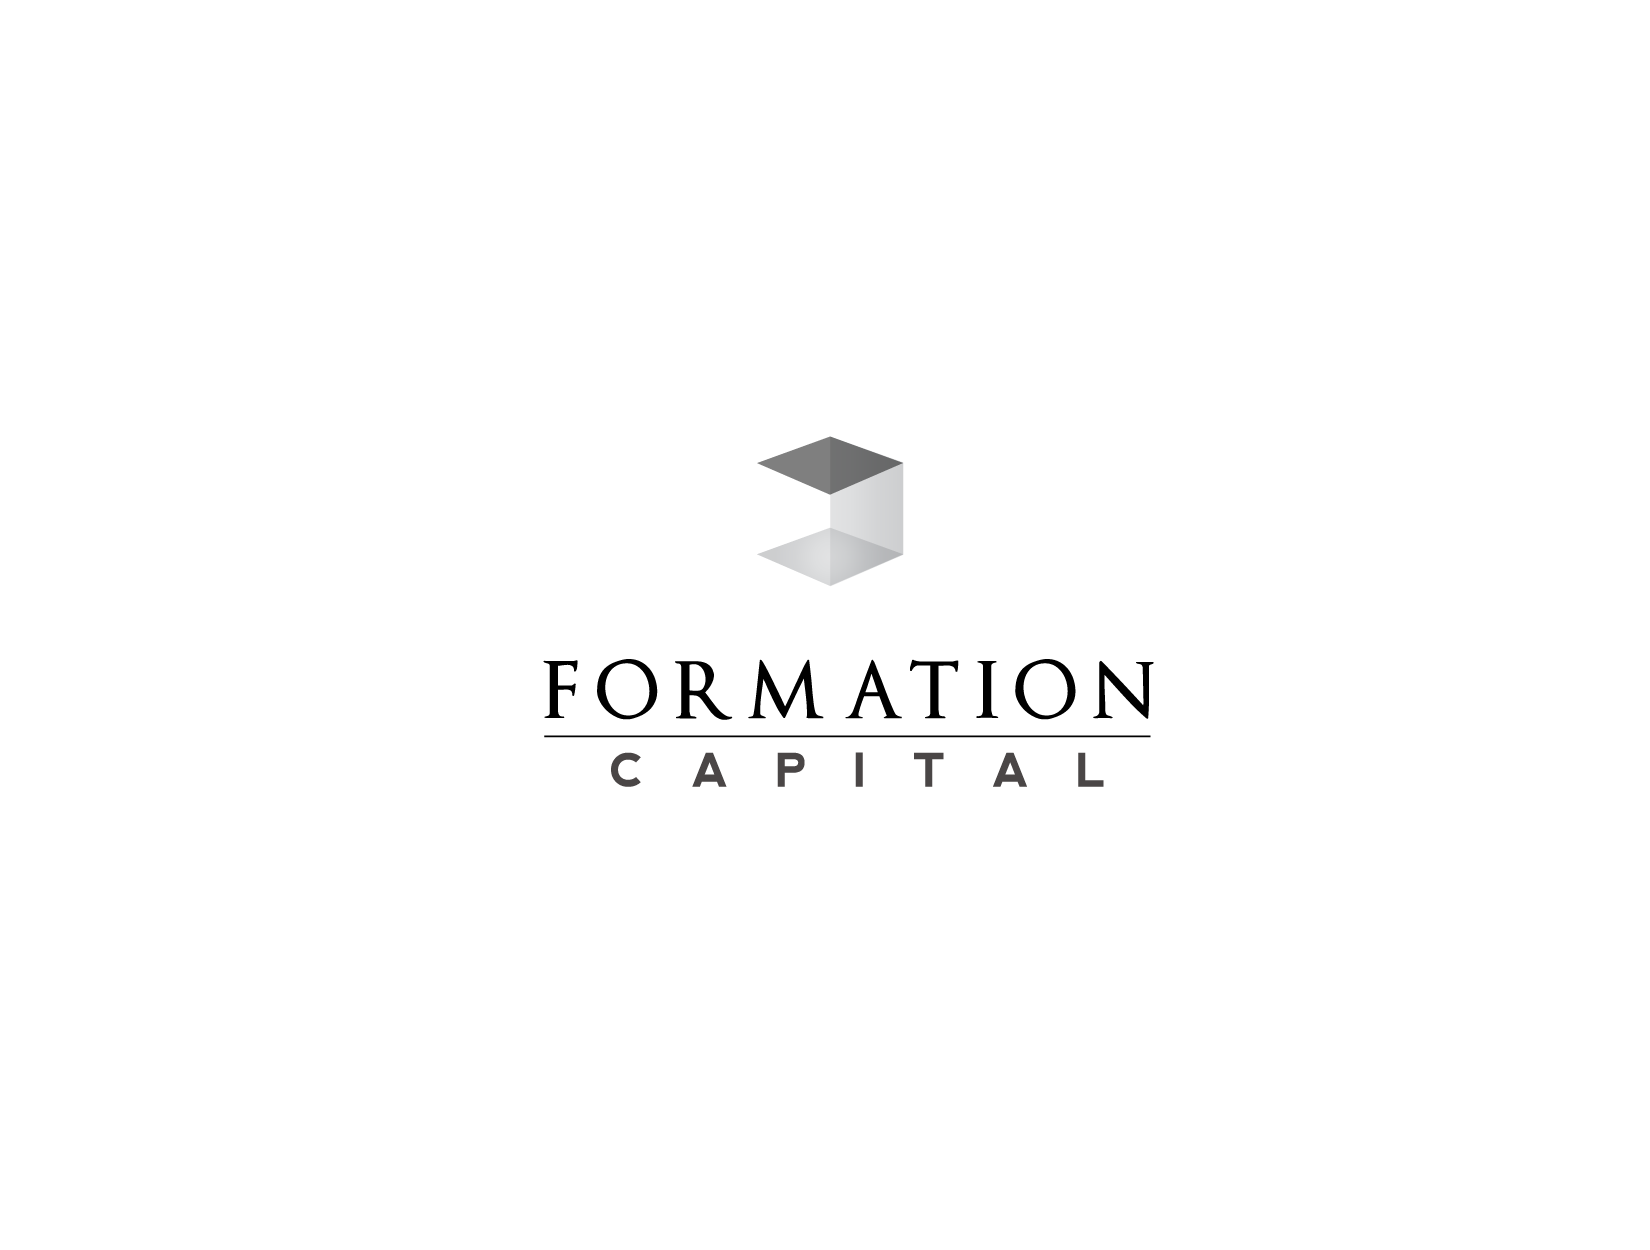 Logo Design by funkeekhan - Entry No. 234 in the Logo Design Contest Inspiring Logo Design for Formation Capital.